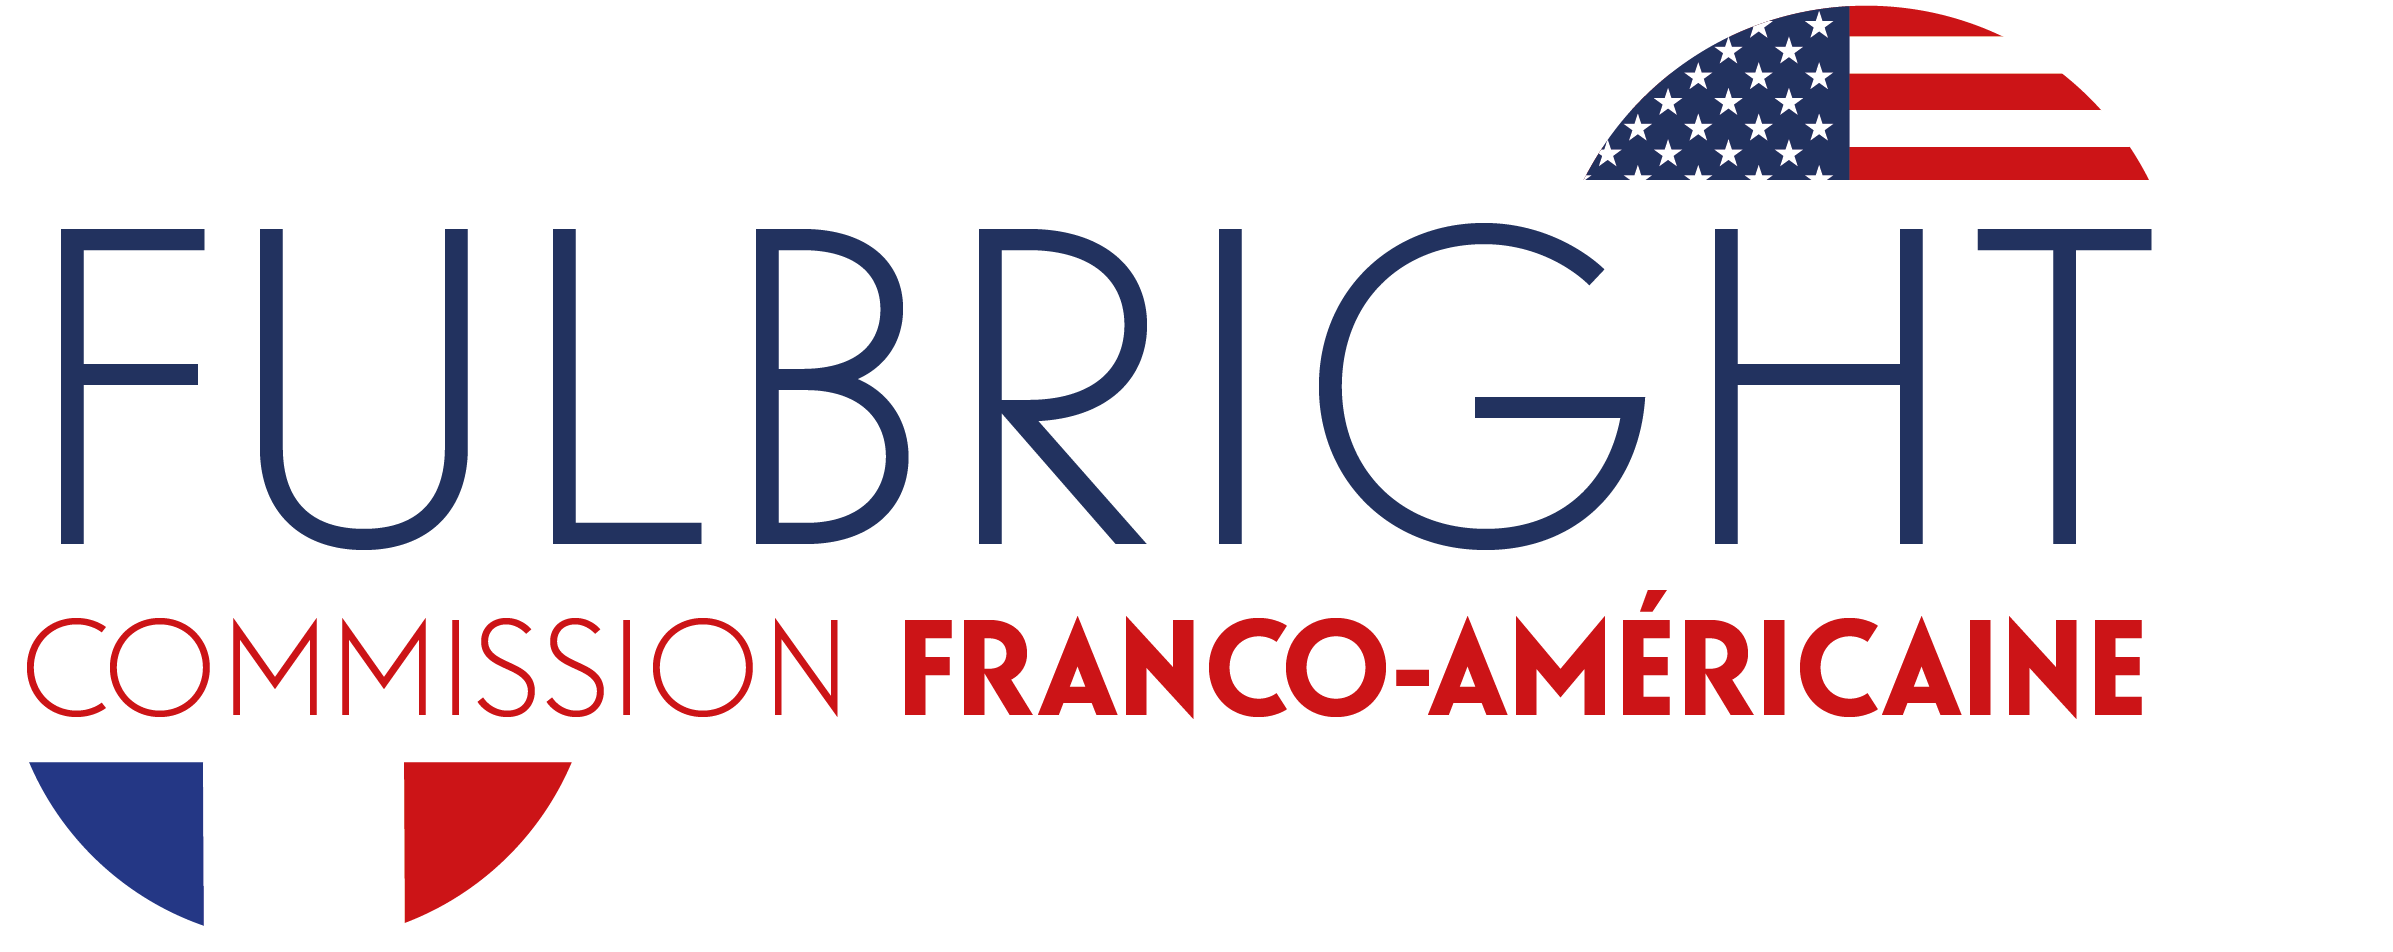 Fulbright - Commission américaine